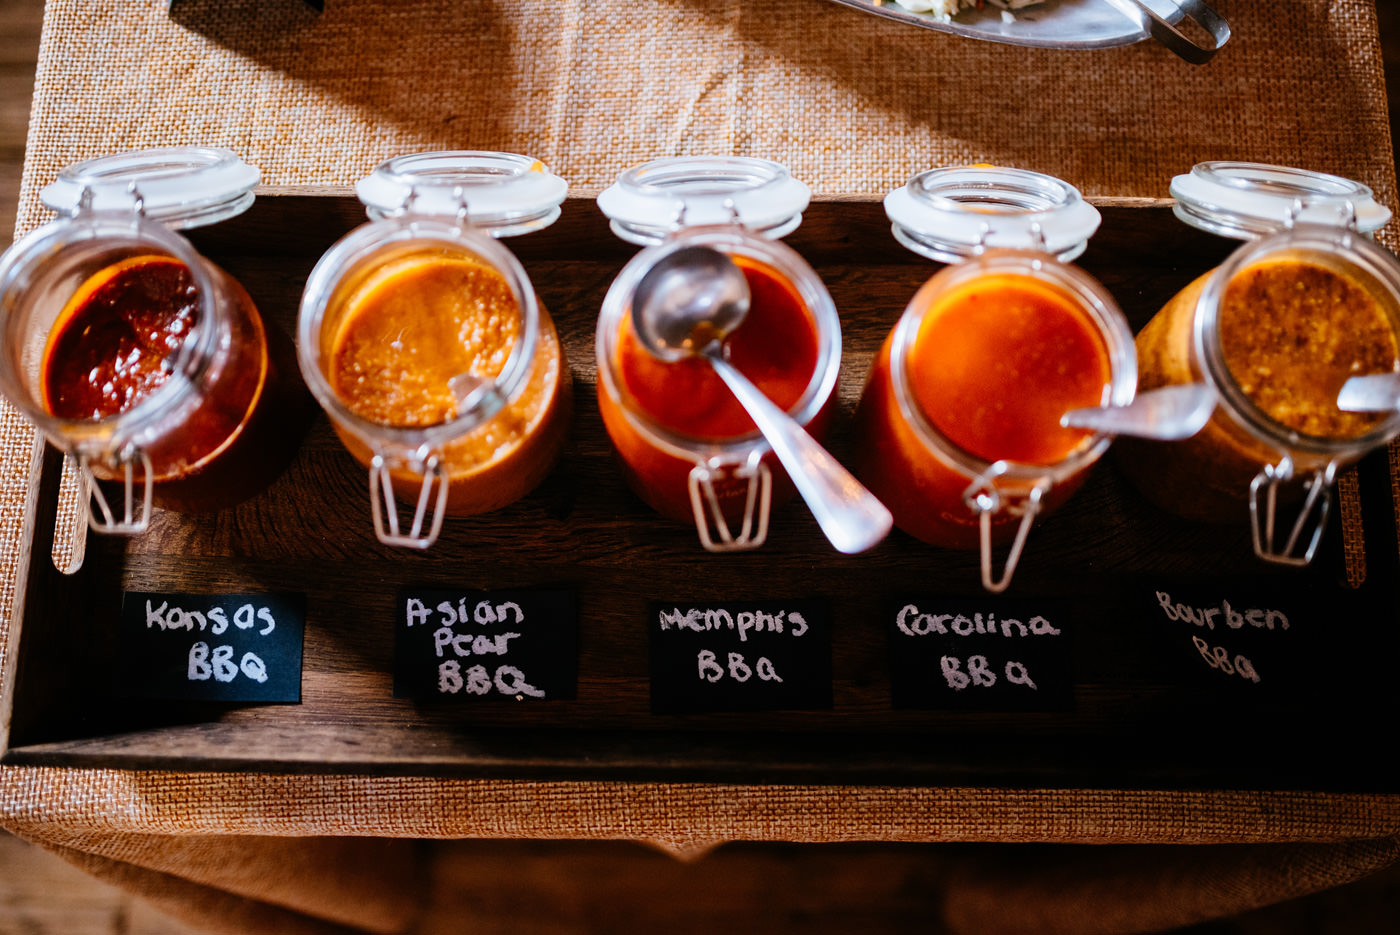 bbq sauce options at wv wedding reception